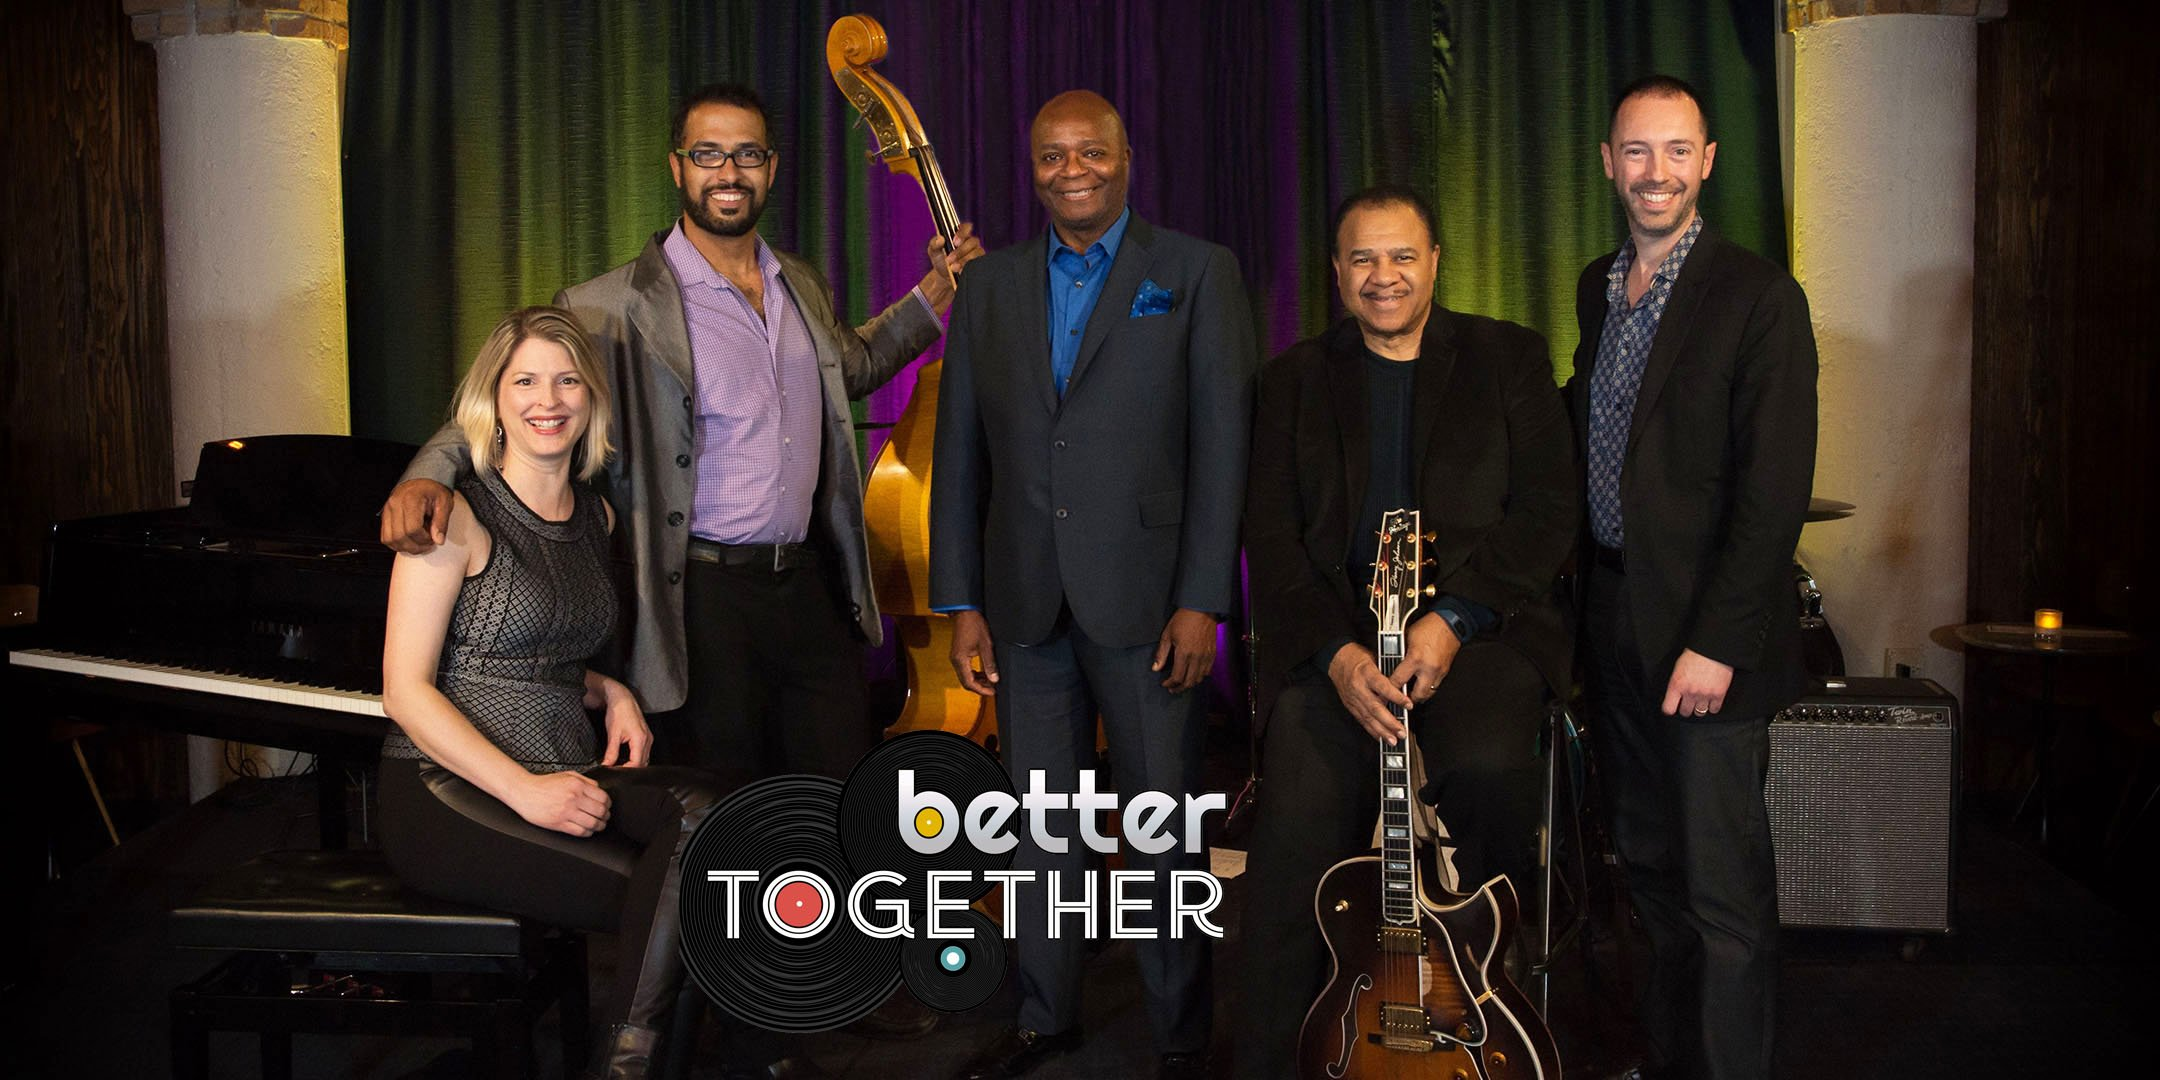 Better Together at Freedom Hall